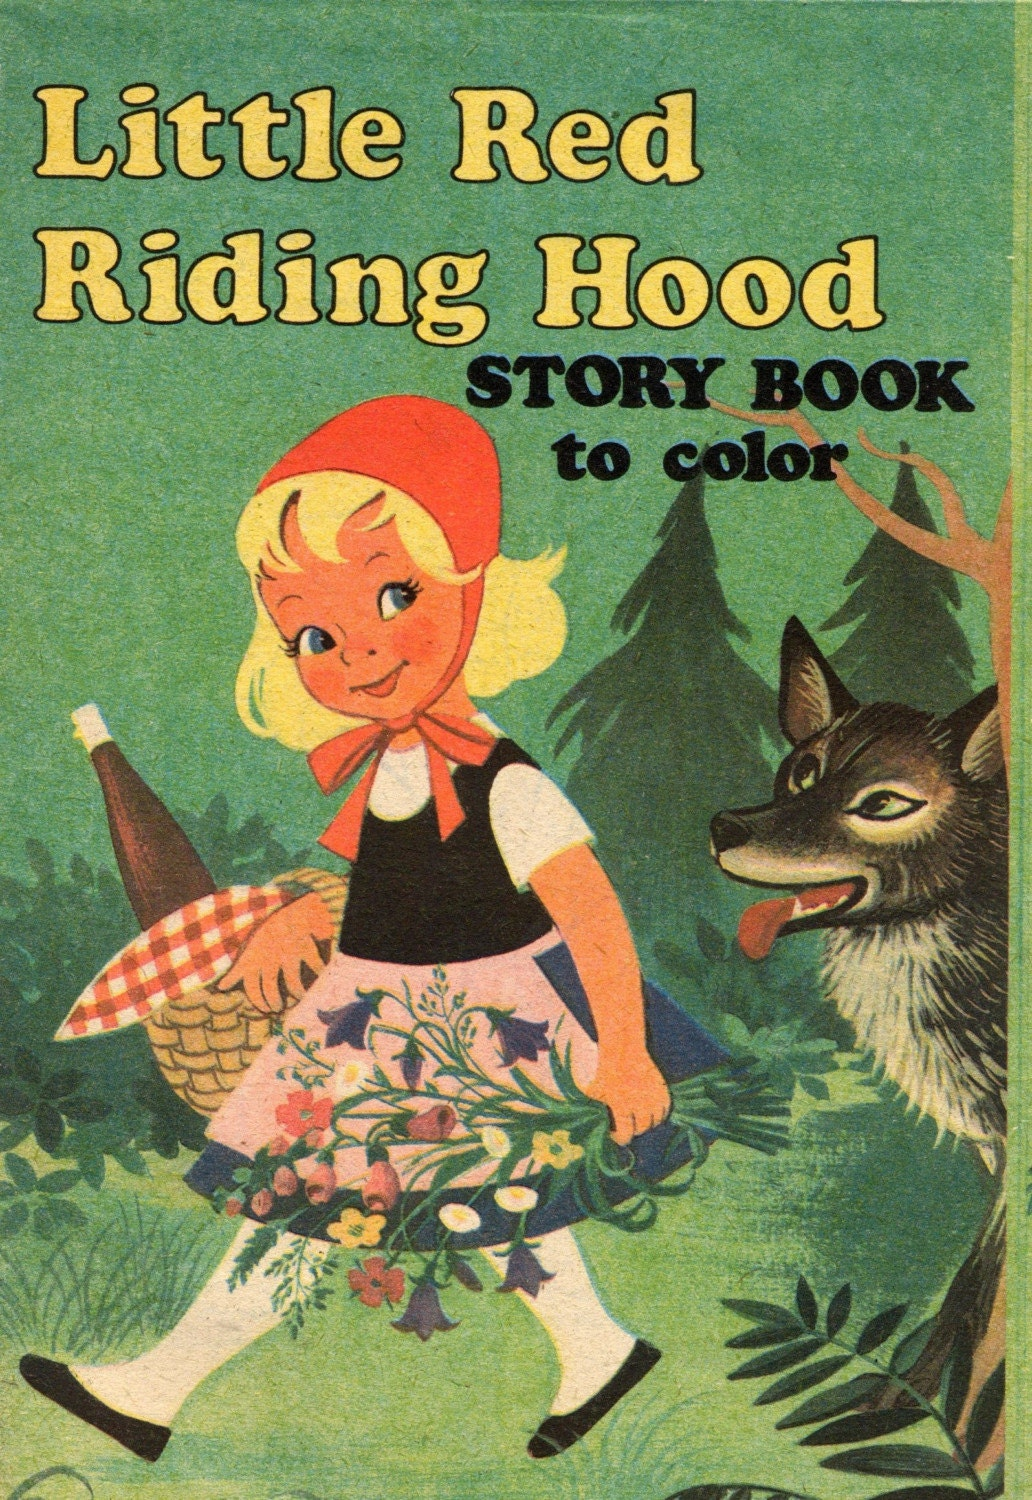 psychological analysis of little red riding hood The intertextual dialogue between little red riding hood and little green riding hood, which helps the reader to appreciate the full meaning of deconstructing the opposition good = human = culture vs bad = wolf = nature.